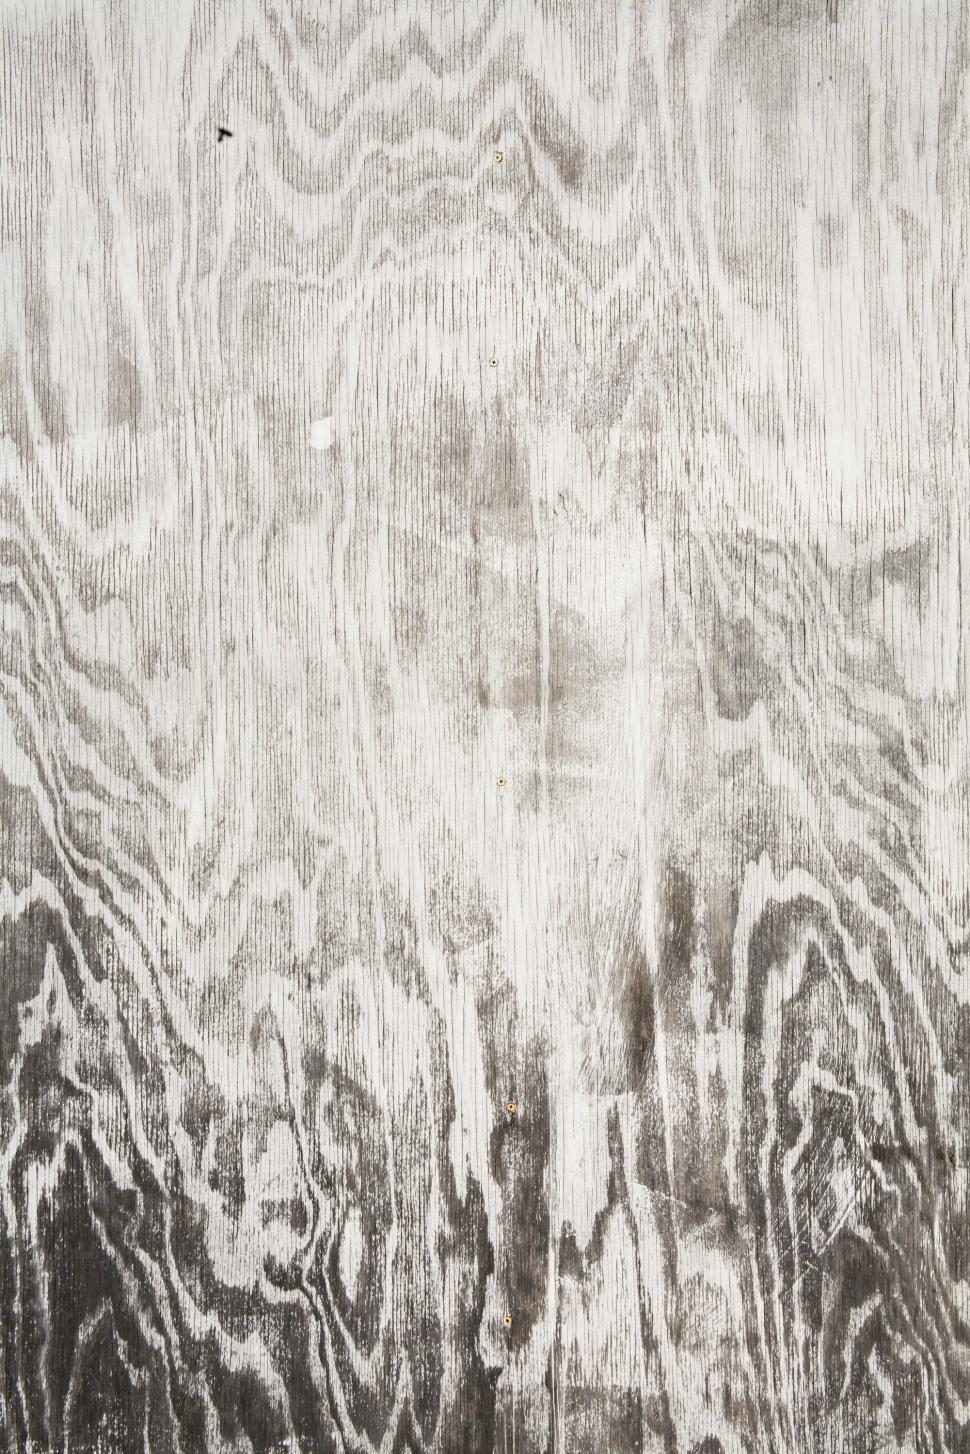 Download Free Stock HD Photo of Painted plywood texture Online